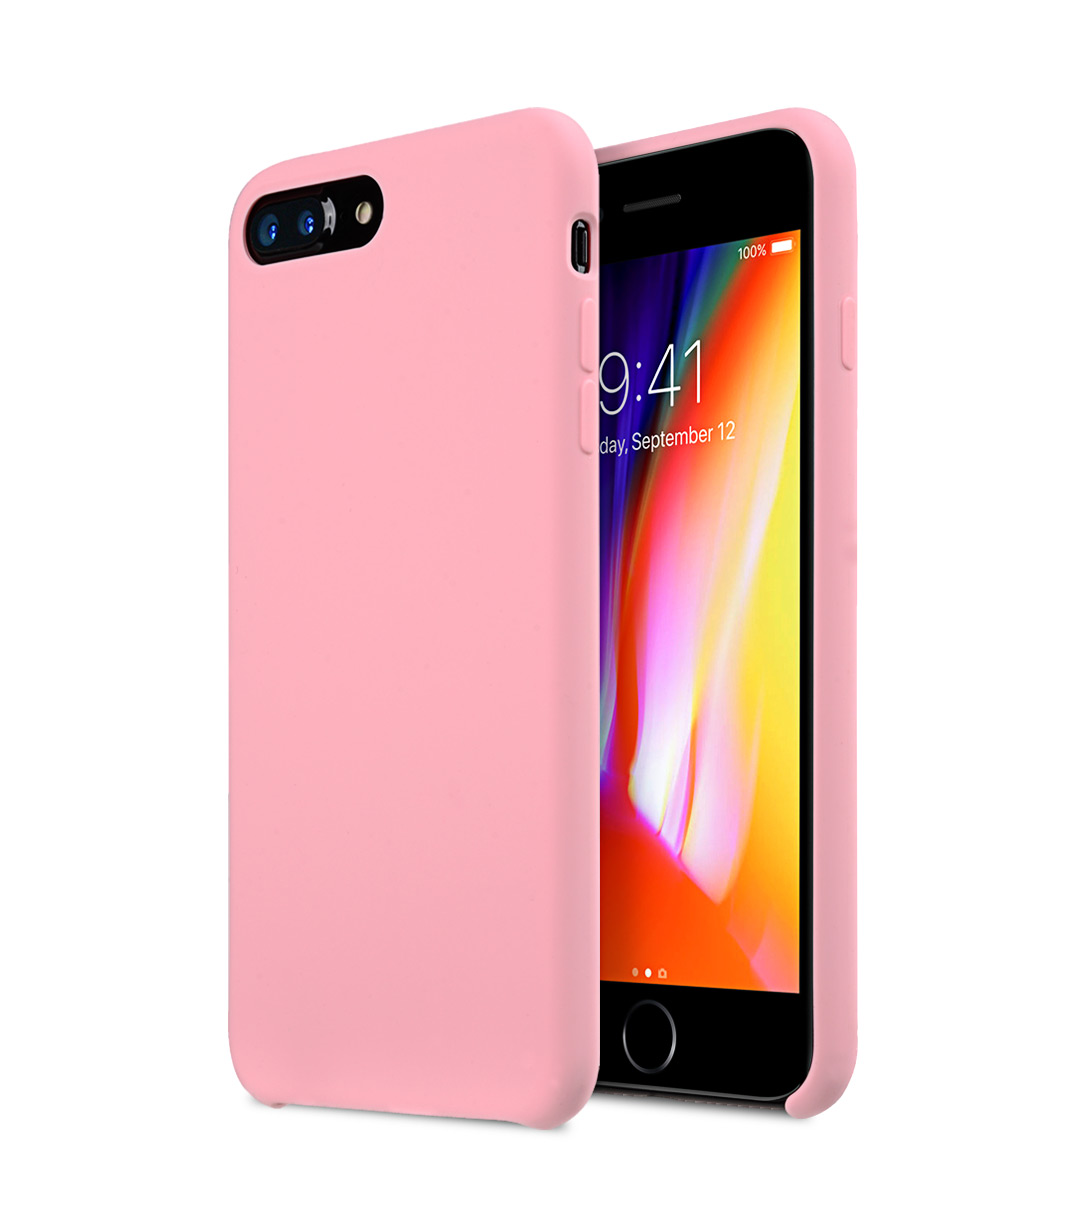 Case Für Iphone Aqua Silicone Case For Apple Iphone 7 8 Plus 5 5